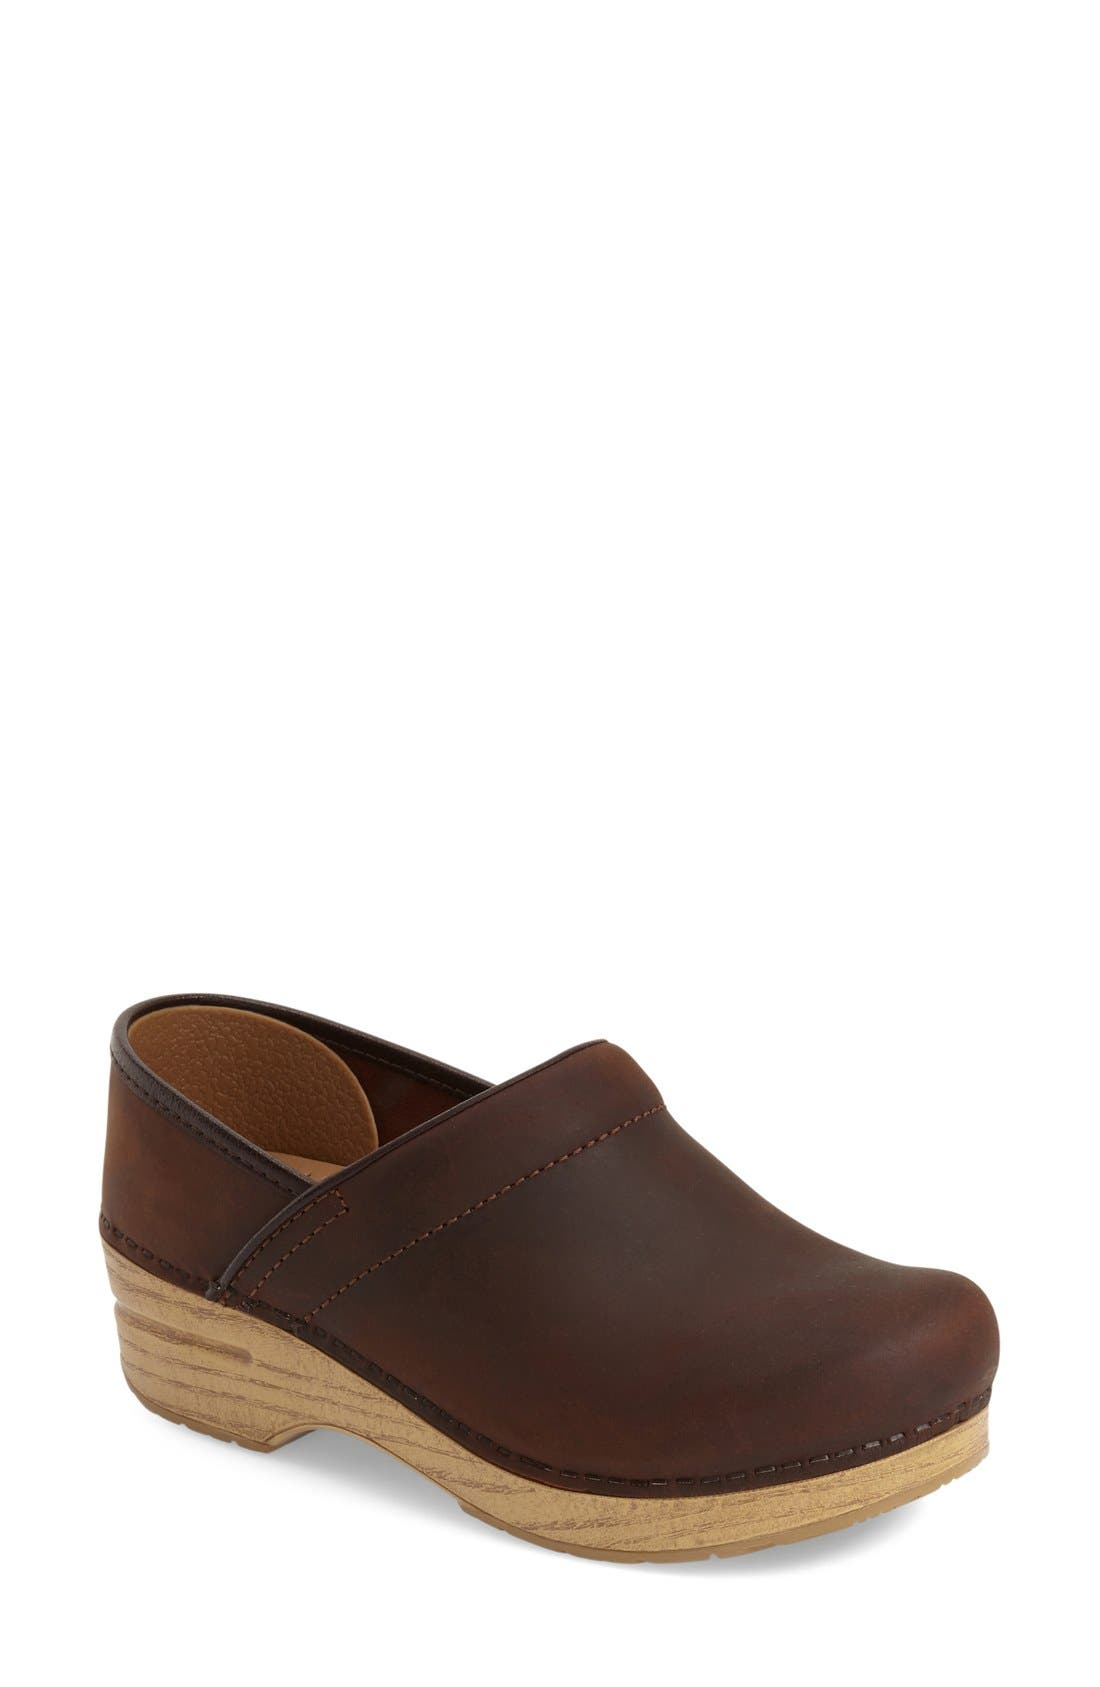 'Professional' Oiled Leather Clog,                         Main,                         color, Antique Brown Oiled Leather